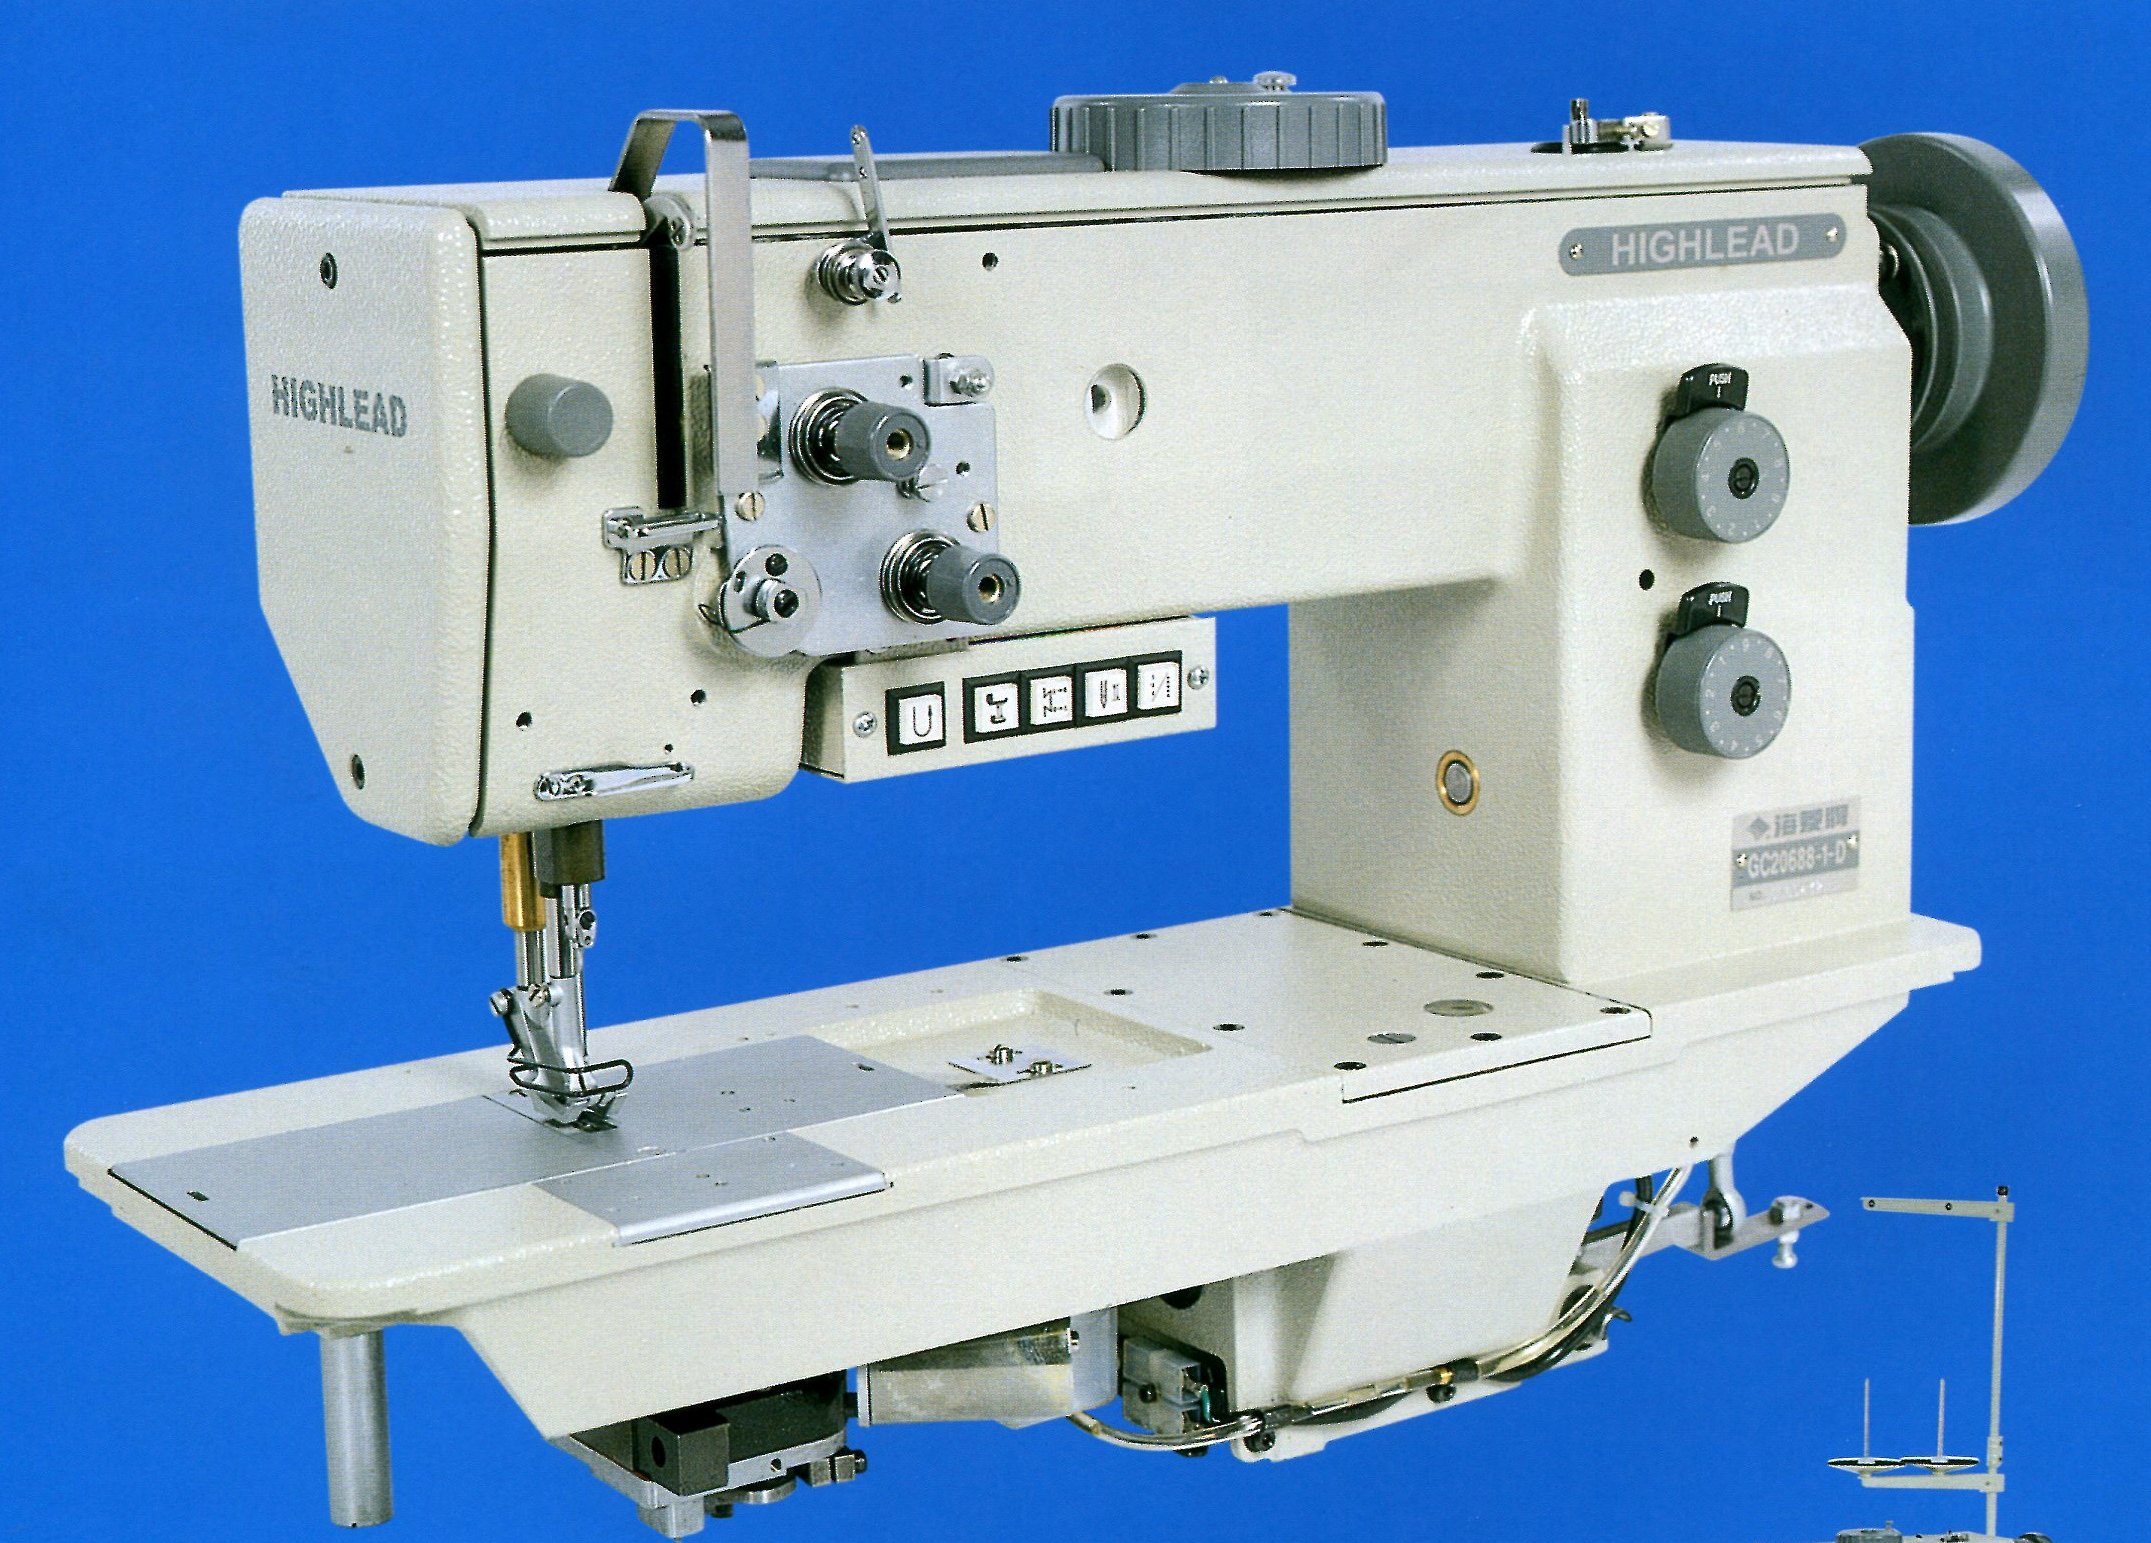 Highlead GC20688 Heavy Duty Sewing Machine